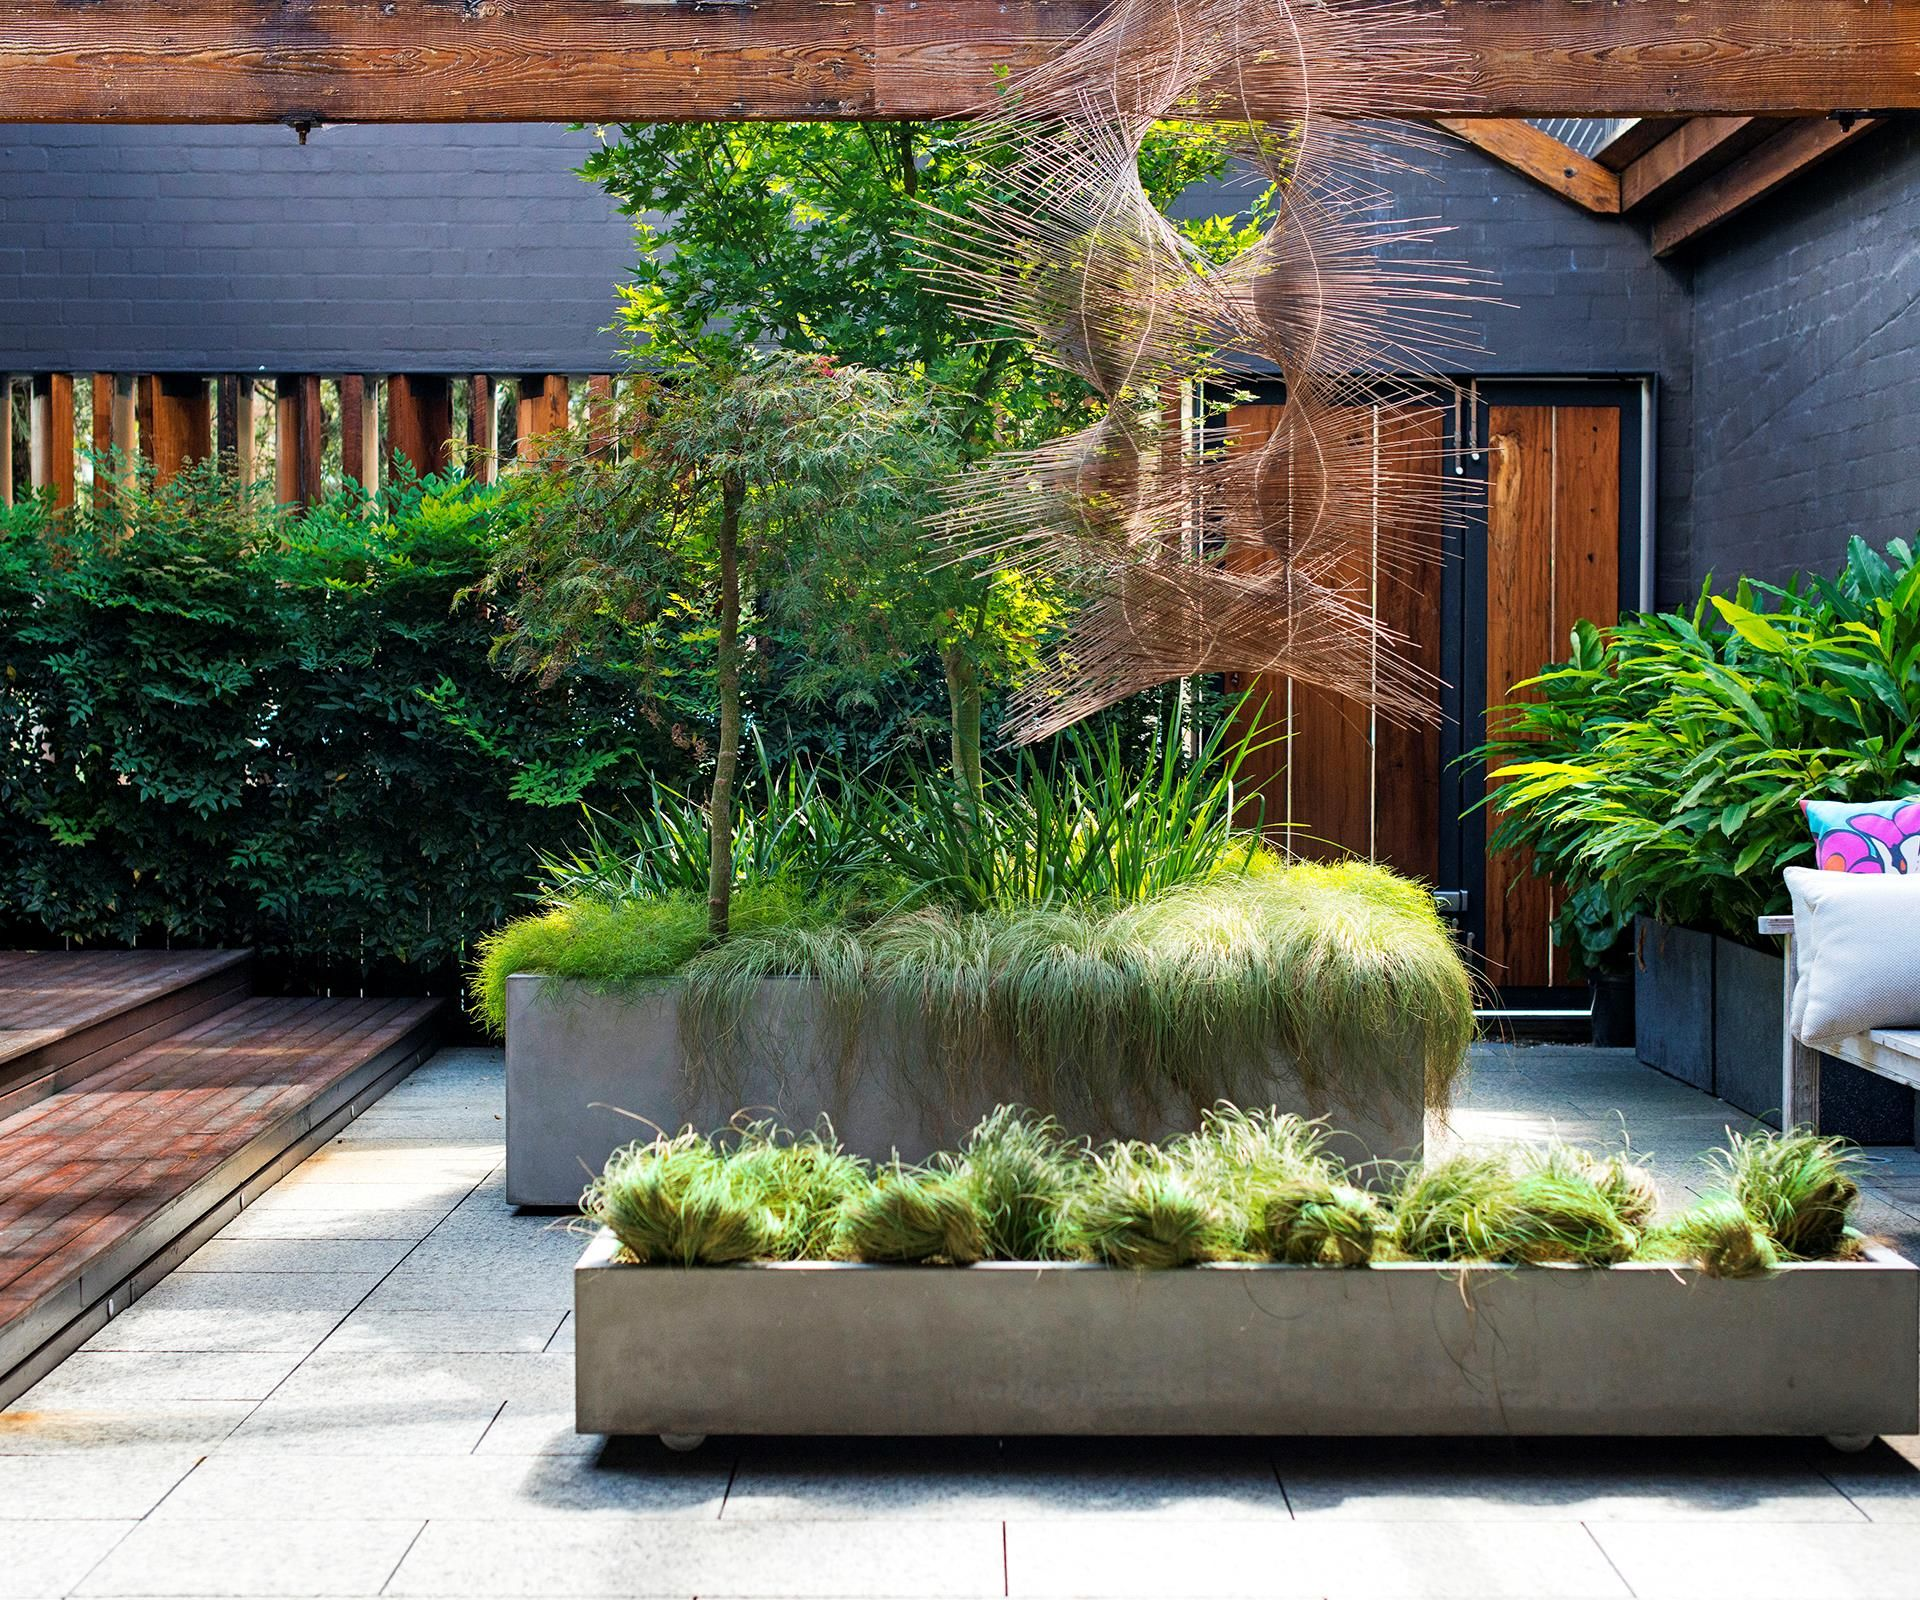 A Warehouse Conversion Has Inspired Industrial Style Landscaping In This Spectacular